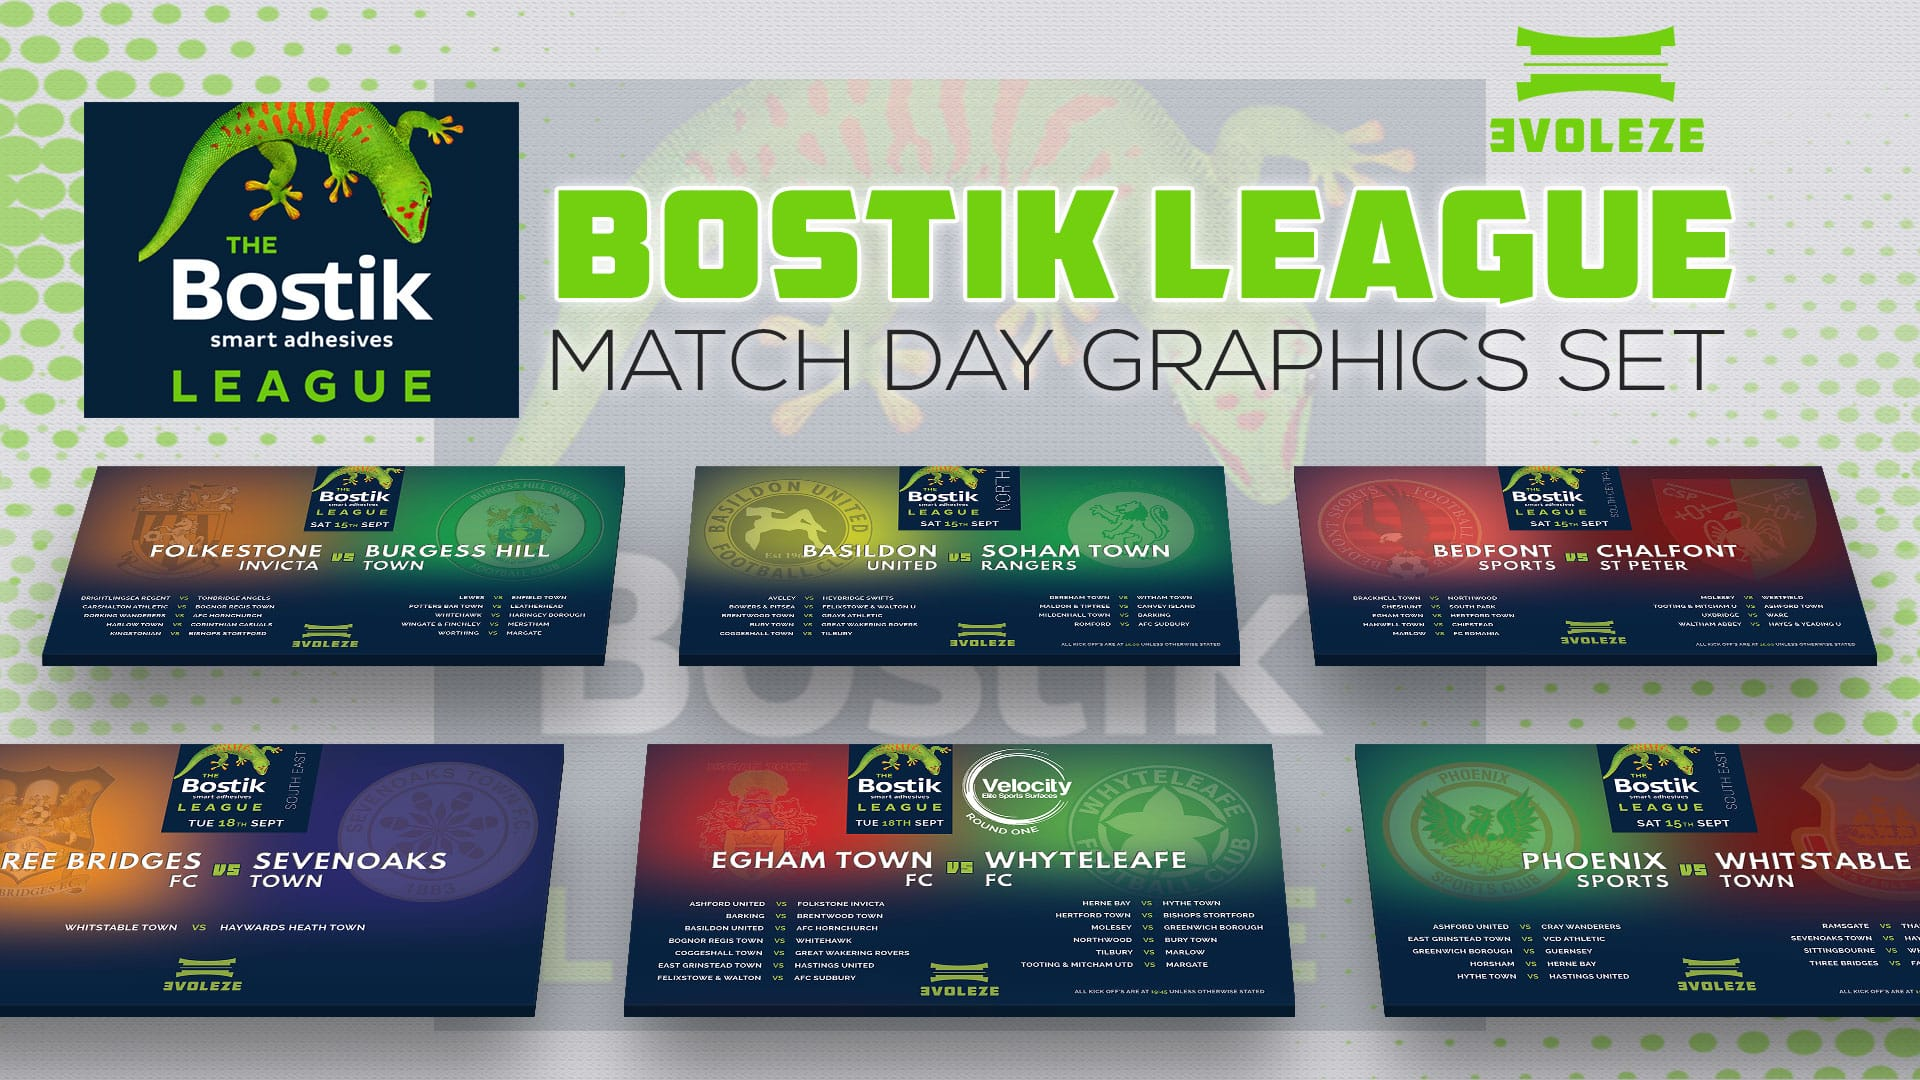 the bostik league match day graphics set